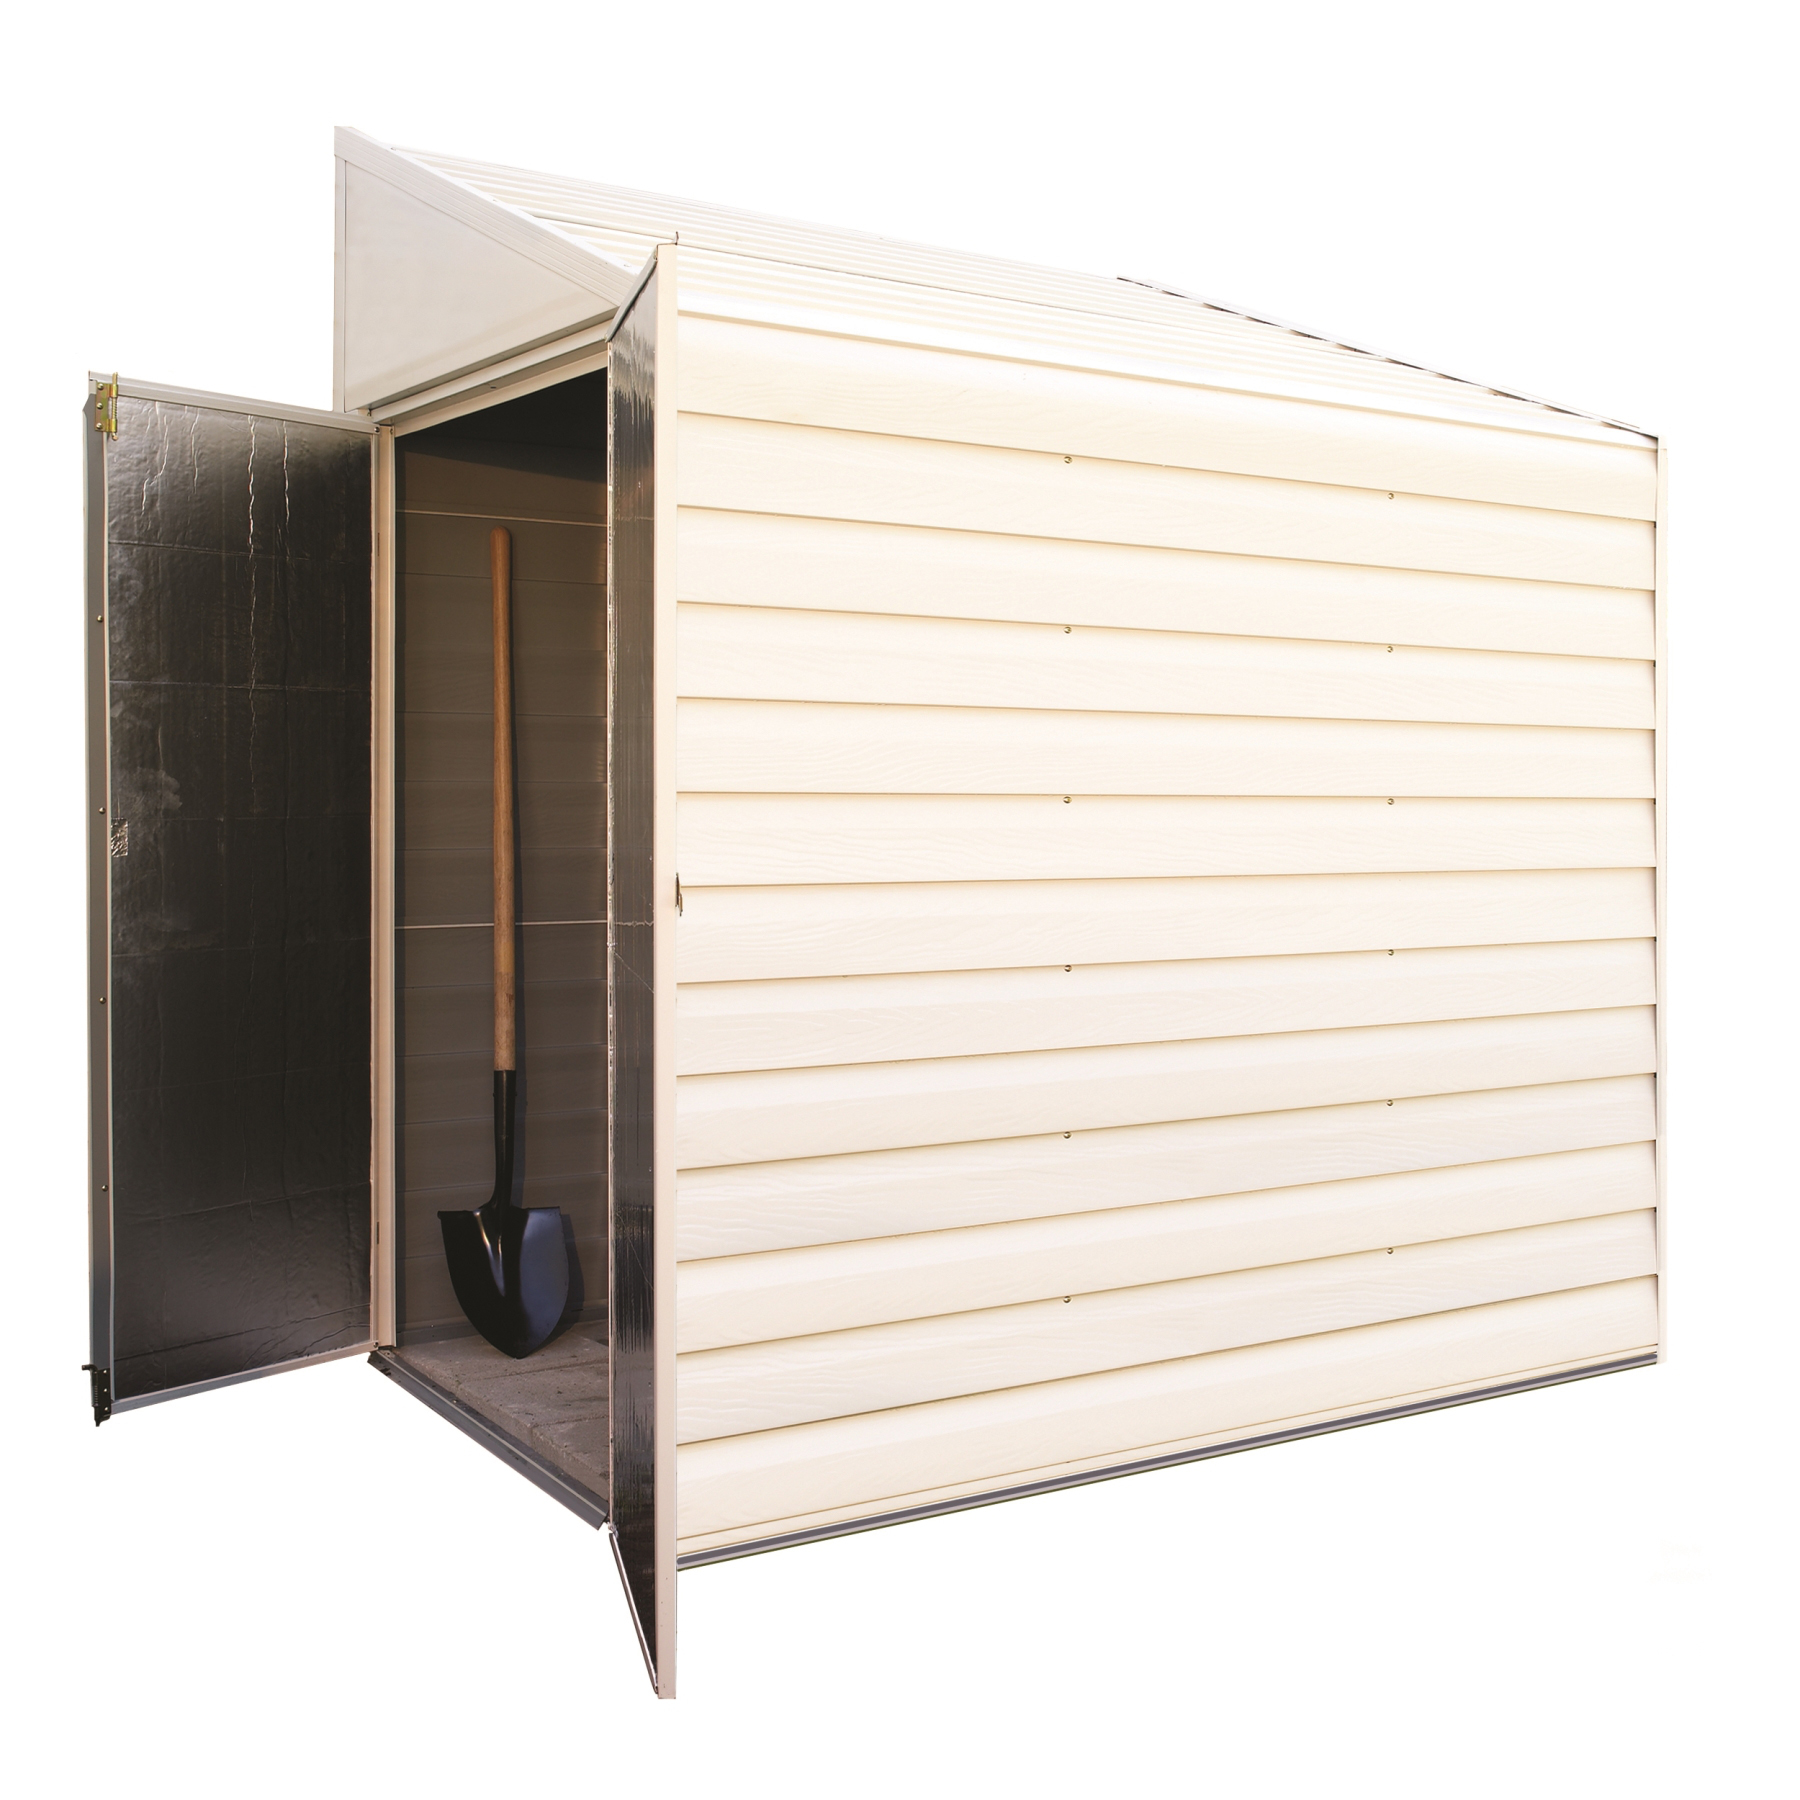 Arrow Yardsaver 4 Ft. x 7 Ft. Storage Building